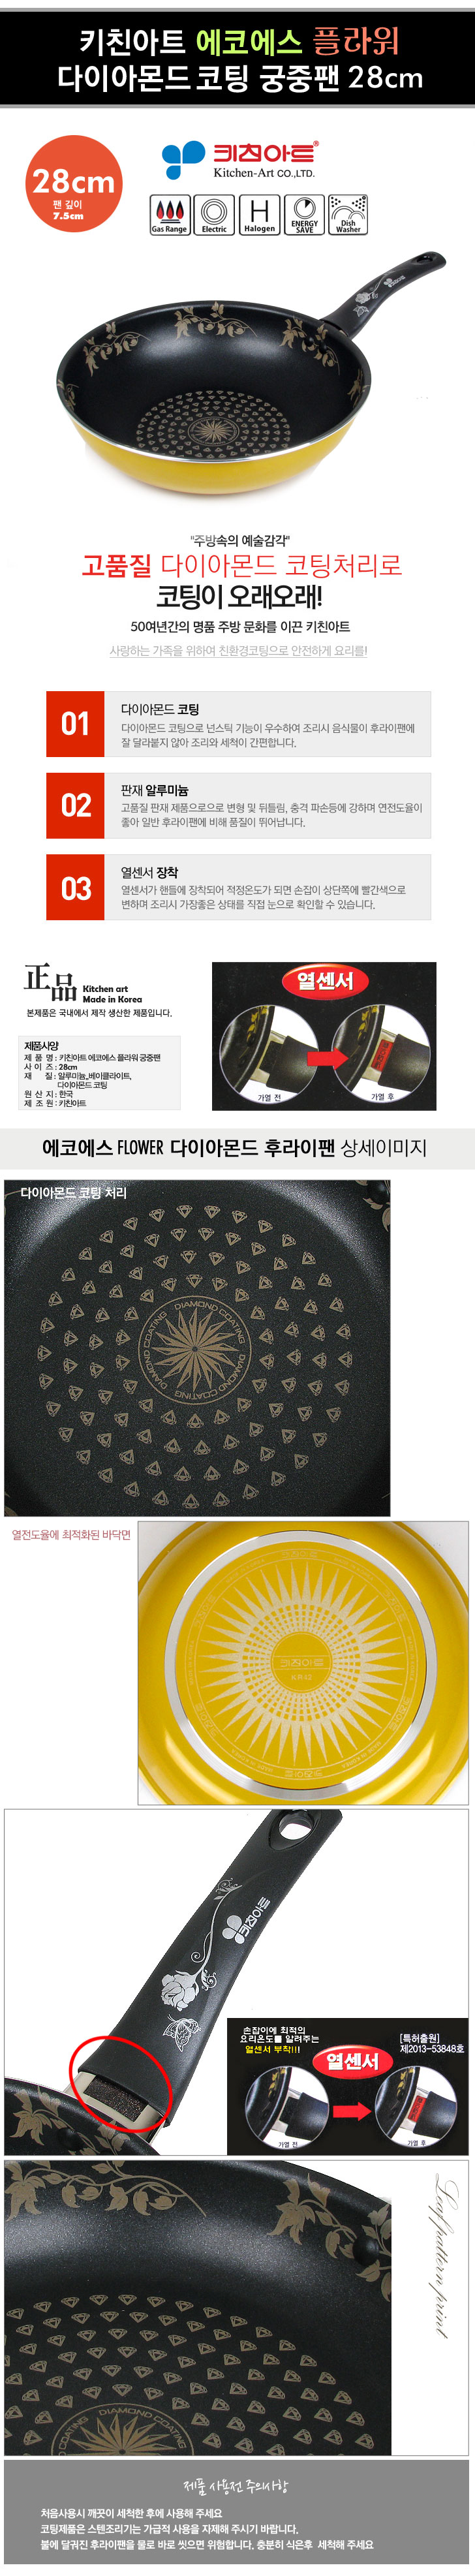 [ KITCHENART ] KitchenArt Eco S Flower Diamond Wokpan Sensor de temperatura 28cm